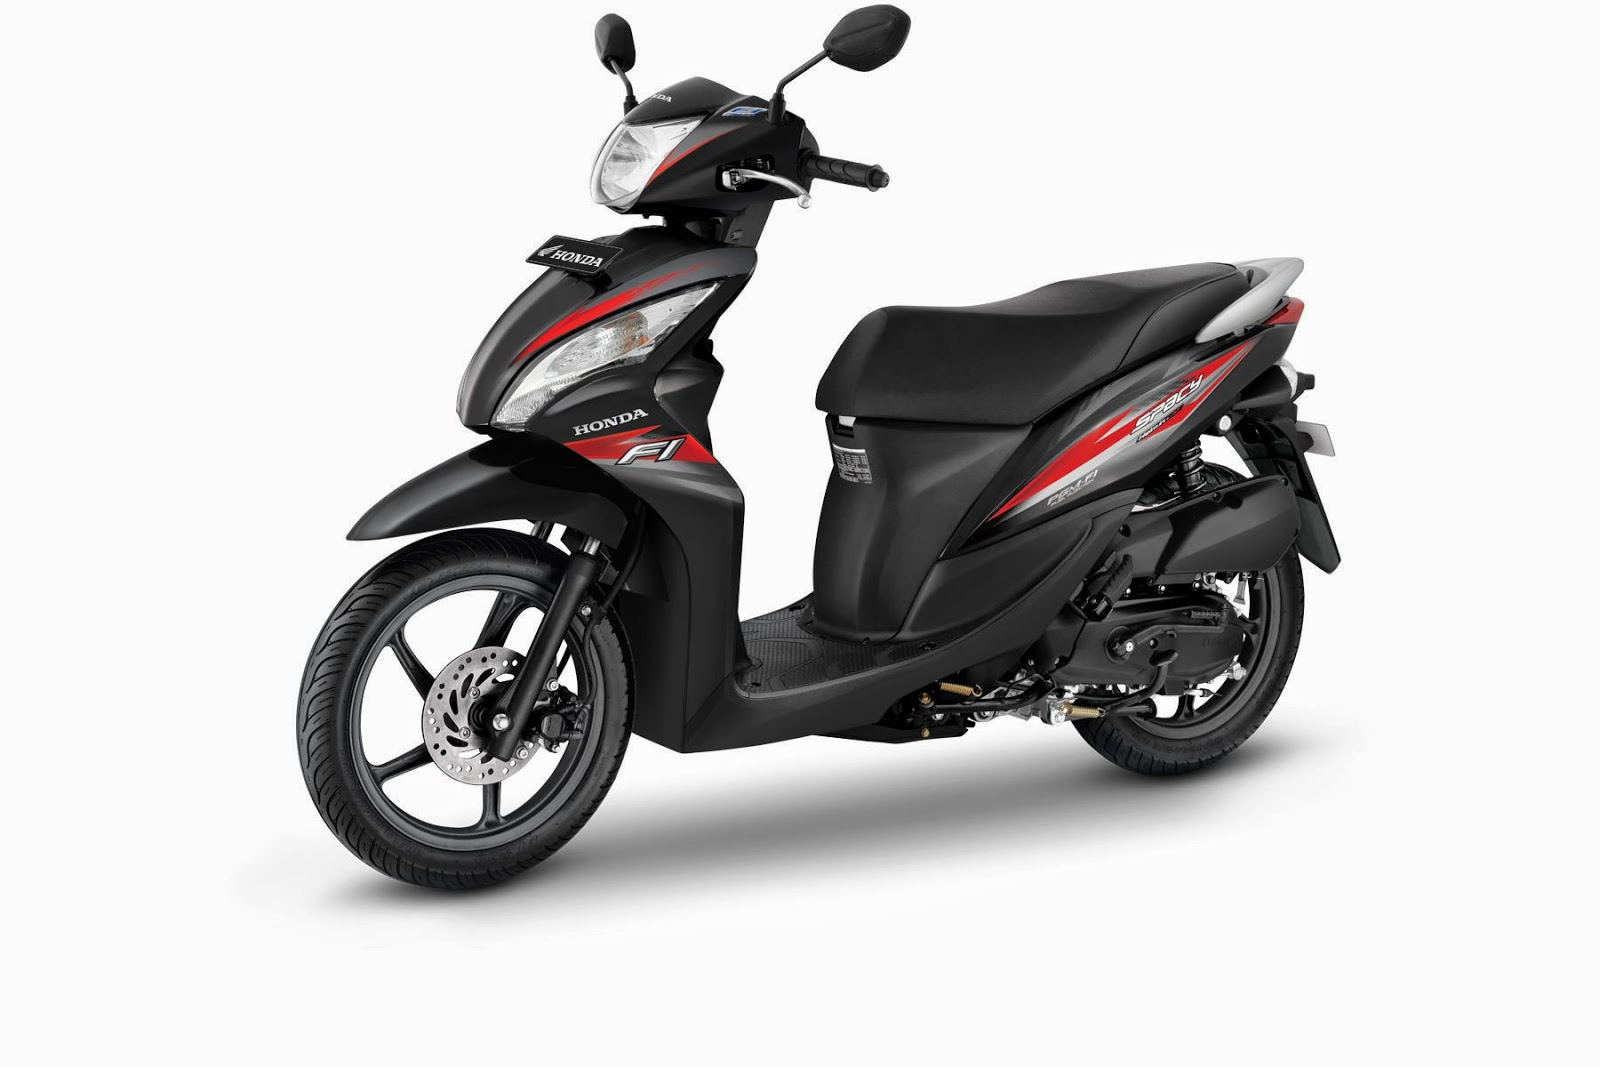 Harga Motor 2015  Harga Honda Spacy